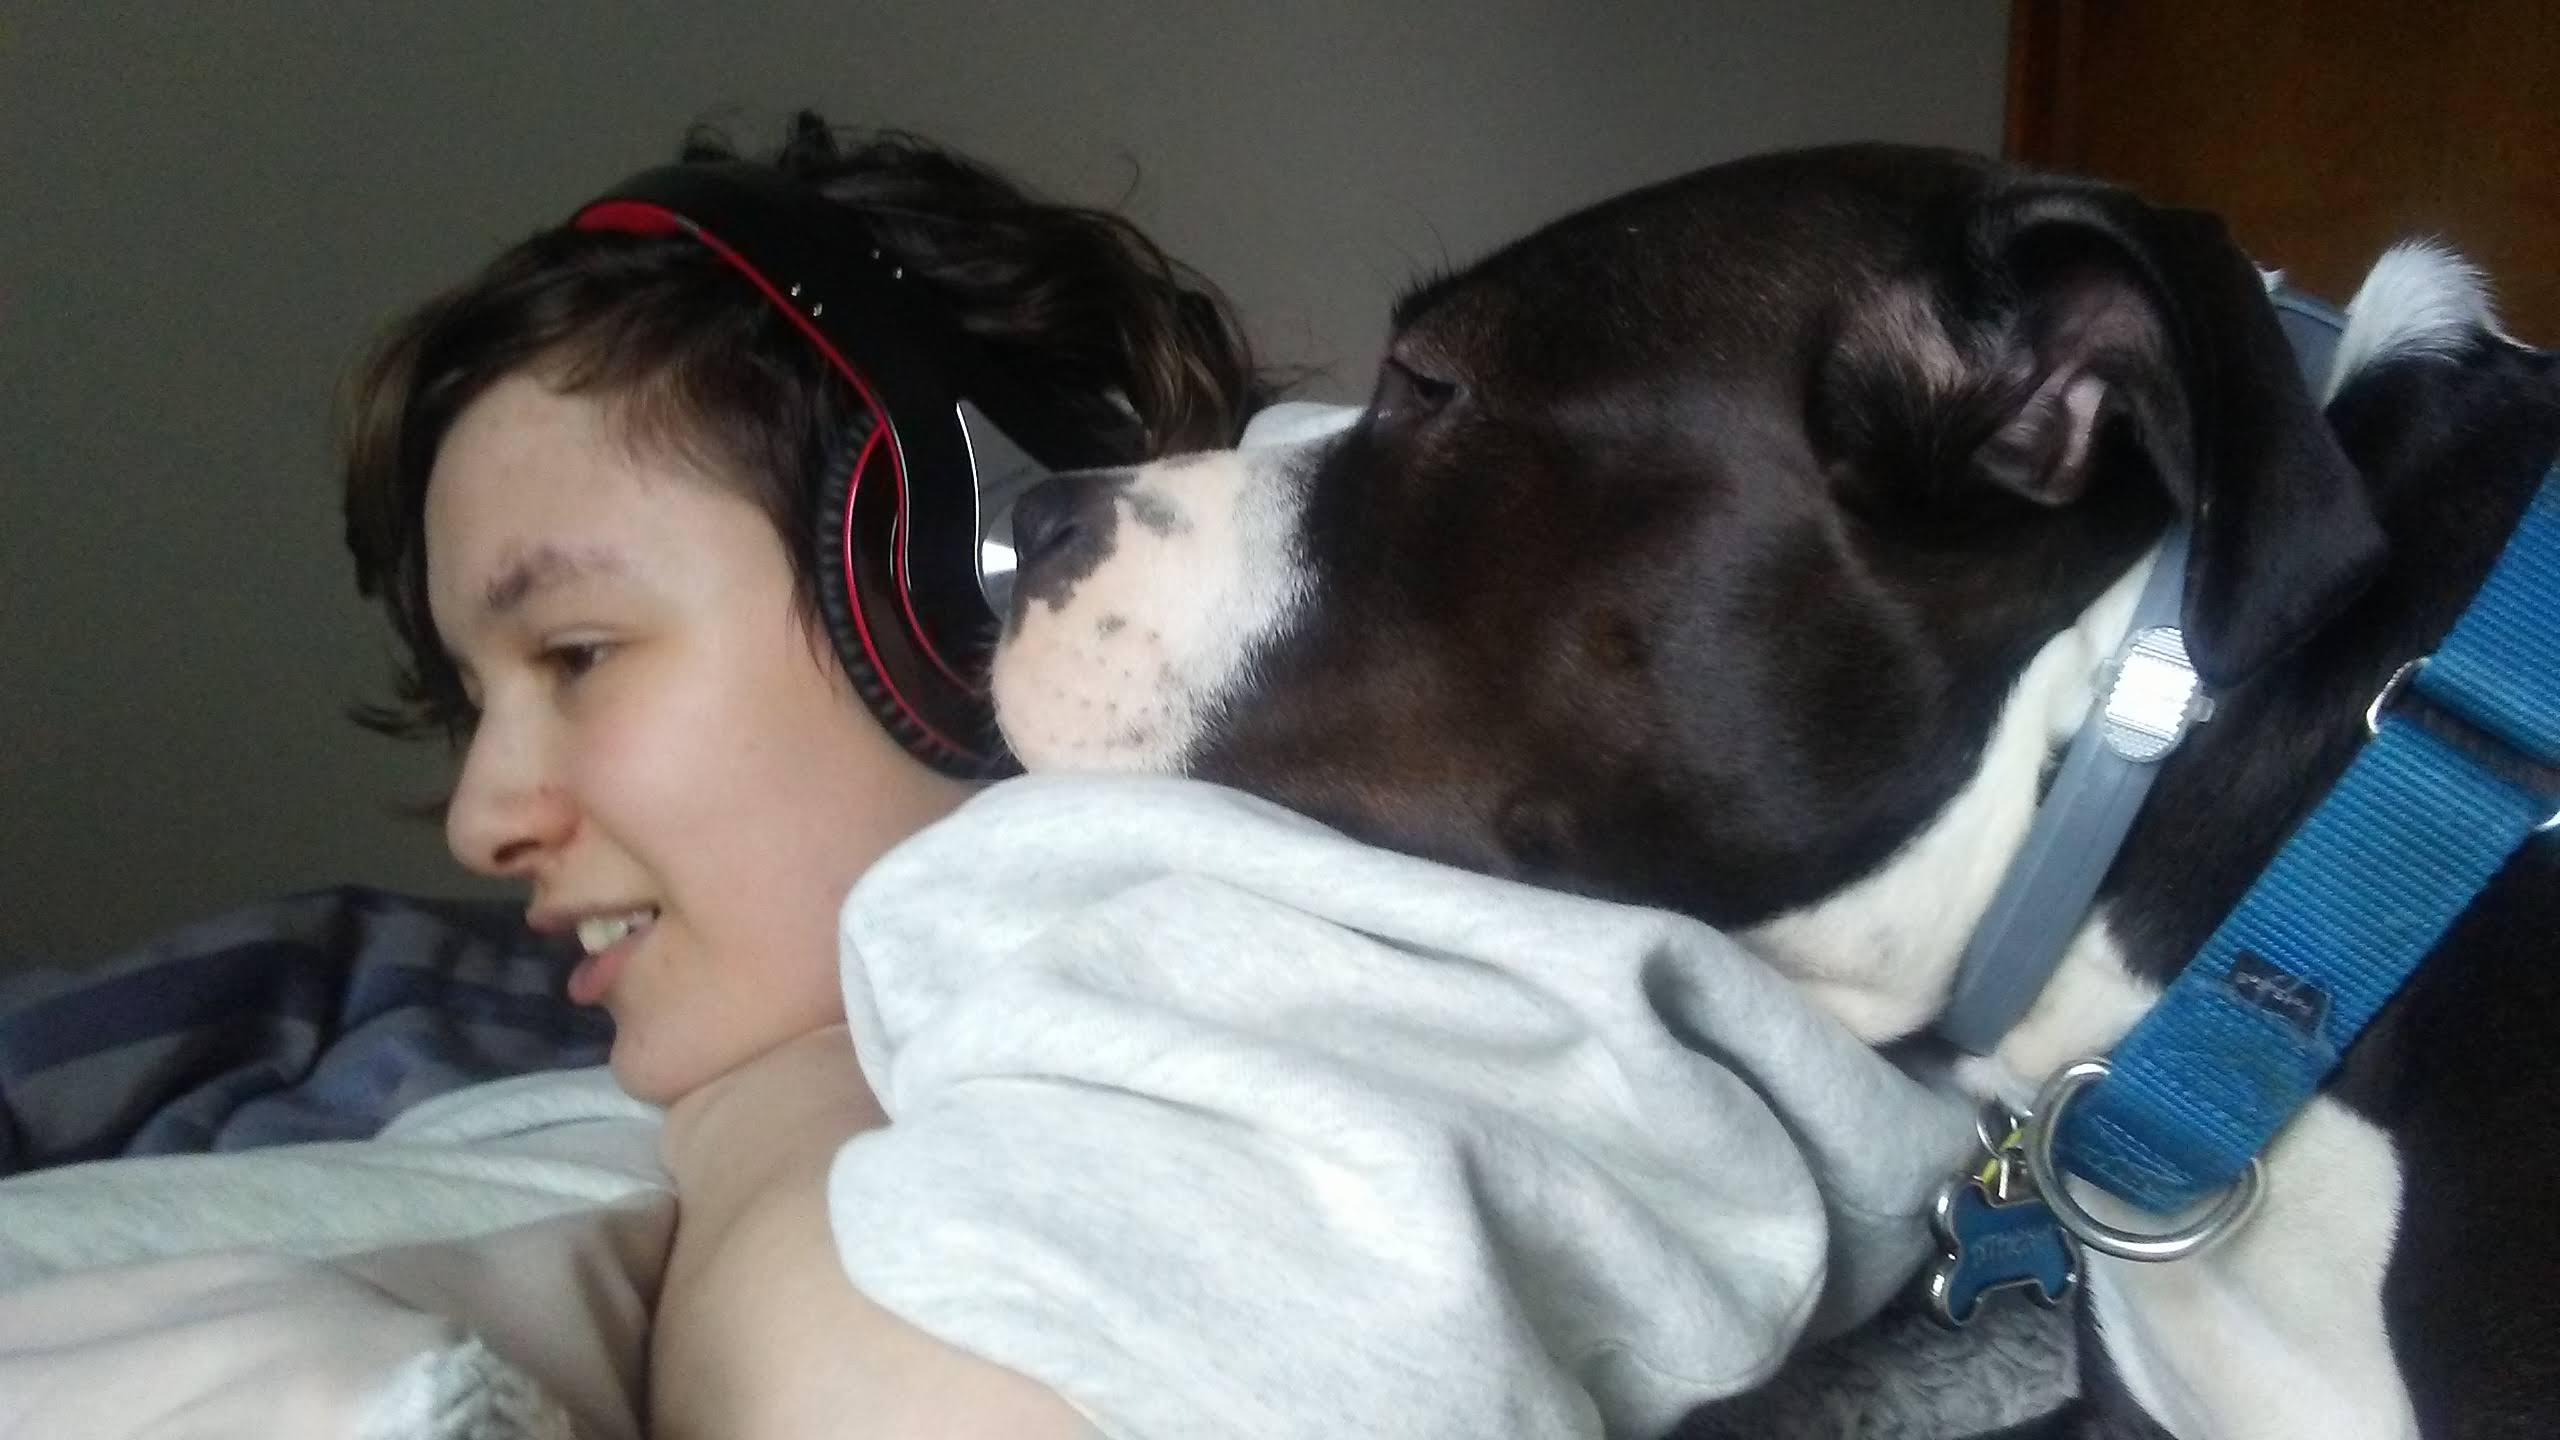 Ari is a light skinned person listening to music with headphones and a dog standing near their shoulder